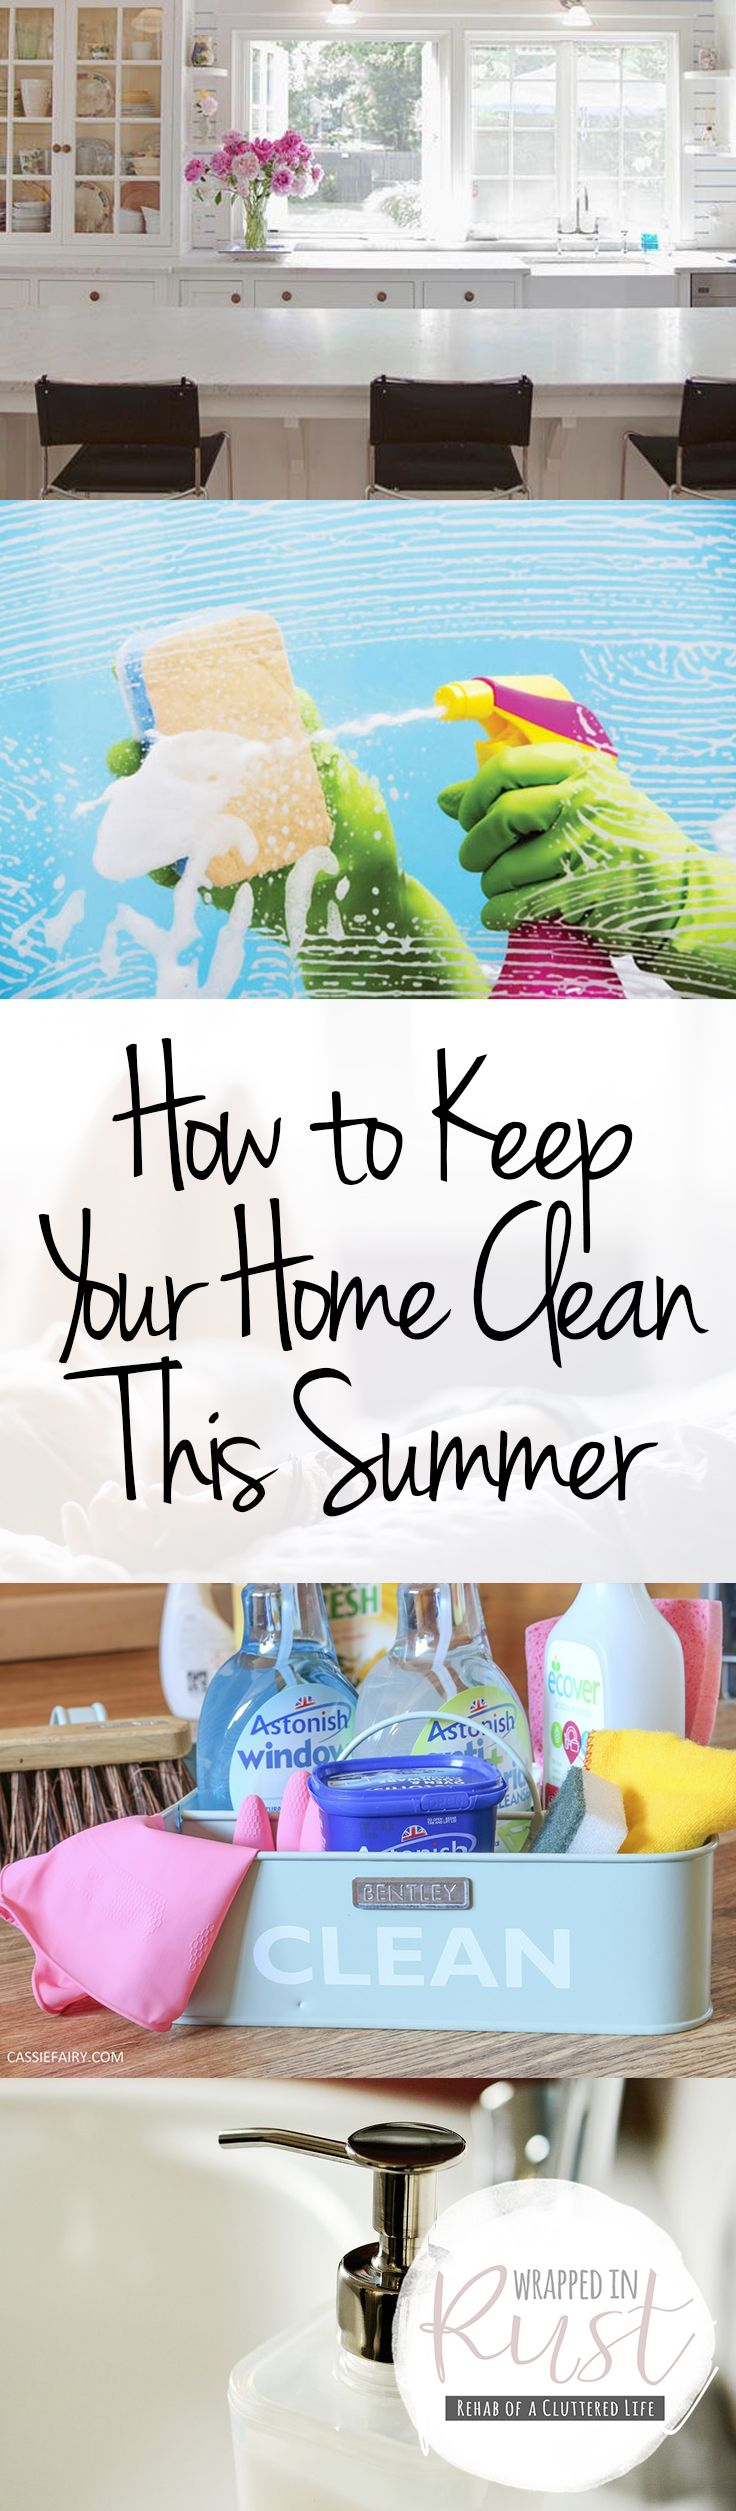 'How to Keep Your Home Clean This Summer...!' (via wrappedinrust.com)